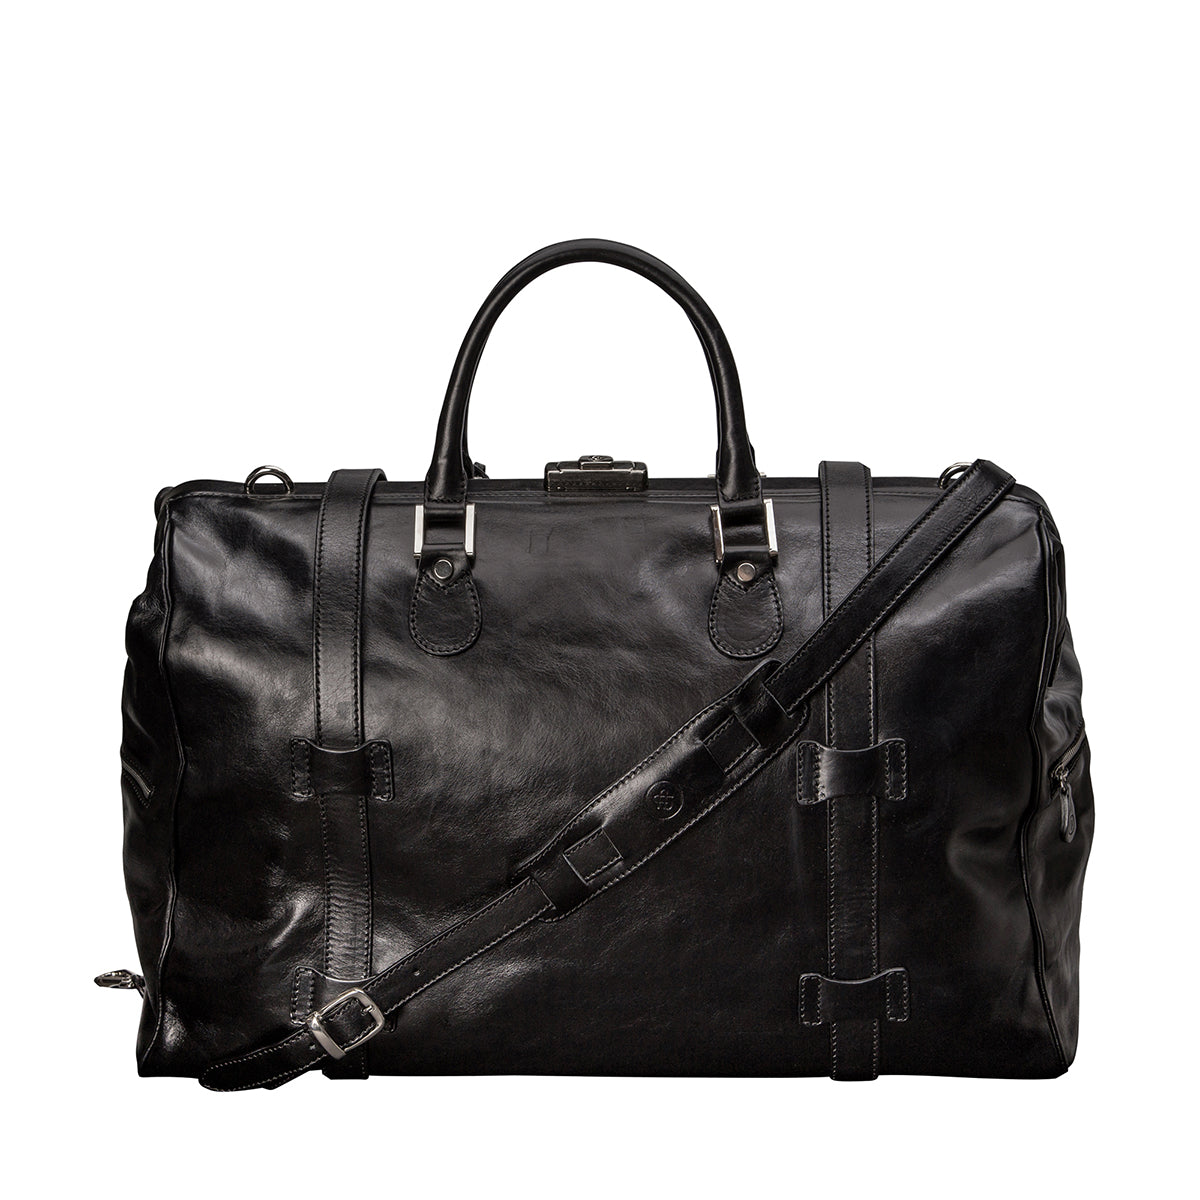 Image 4 of the 'Gassano L' Black Veg-Tanned Leather Holdall